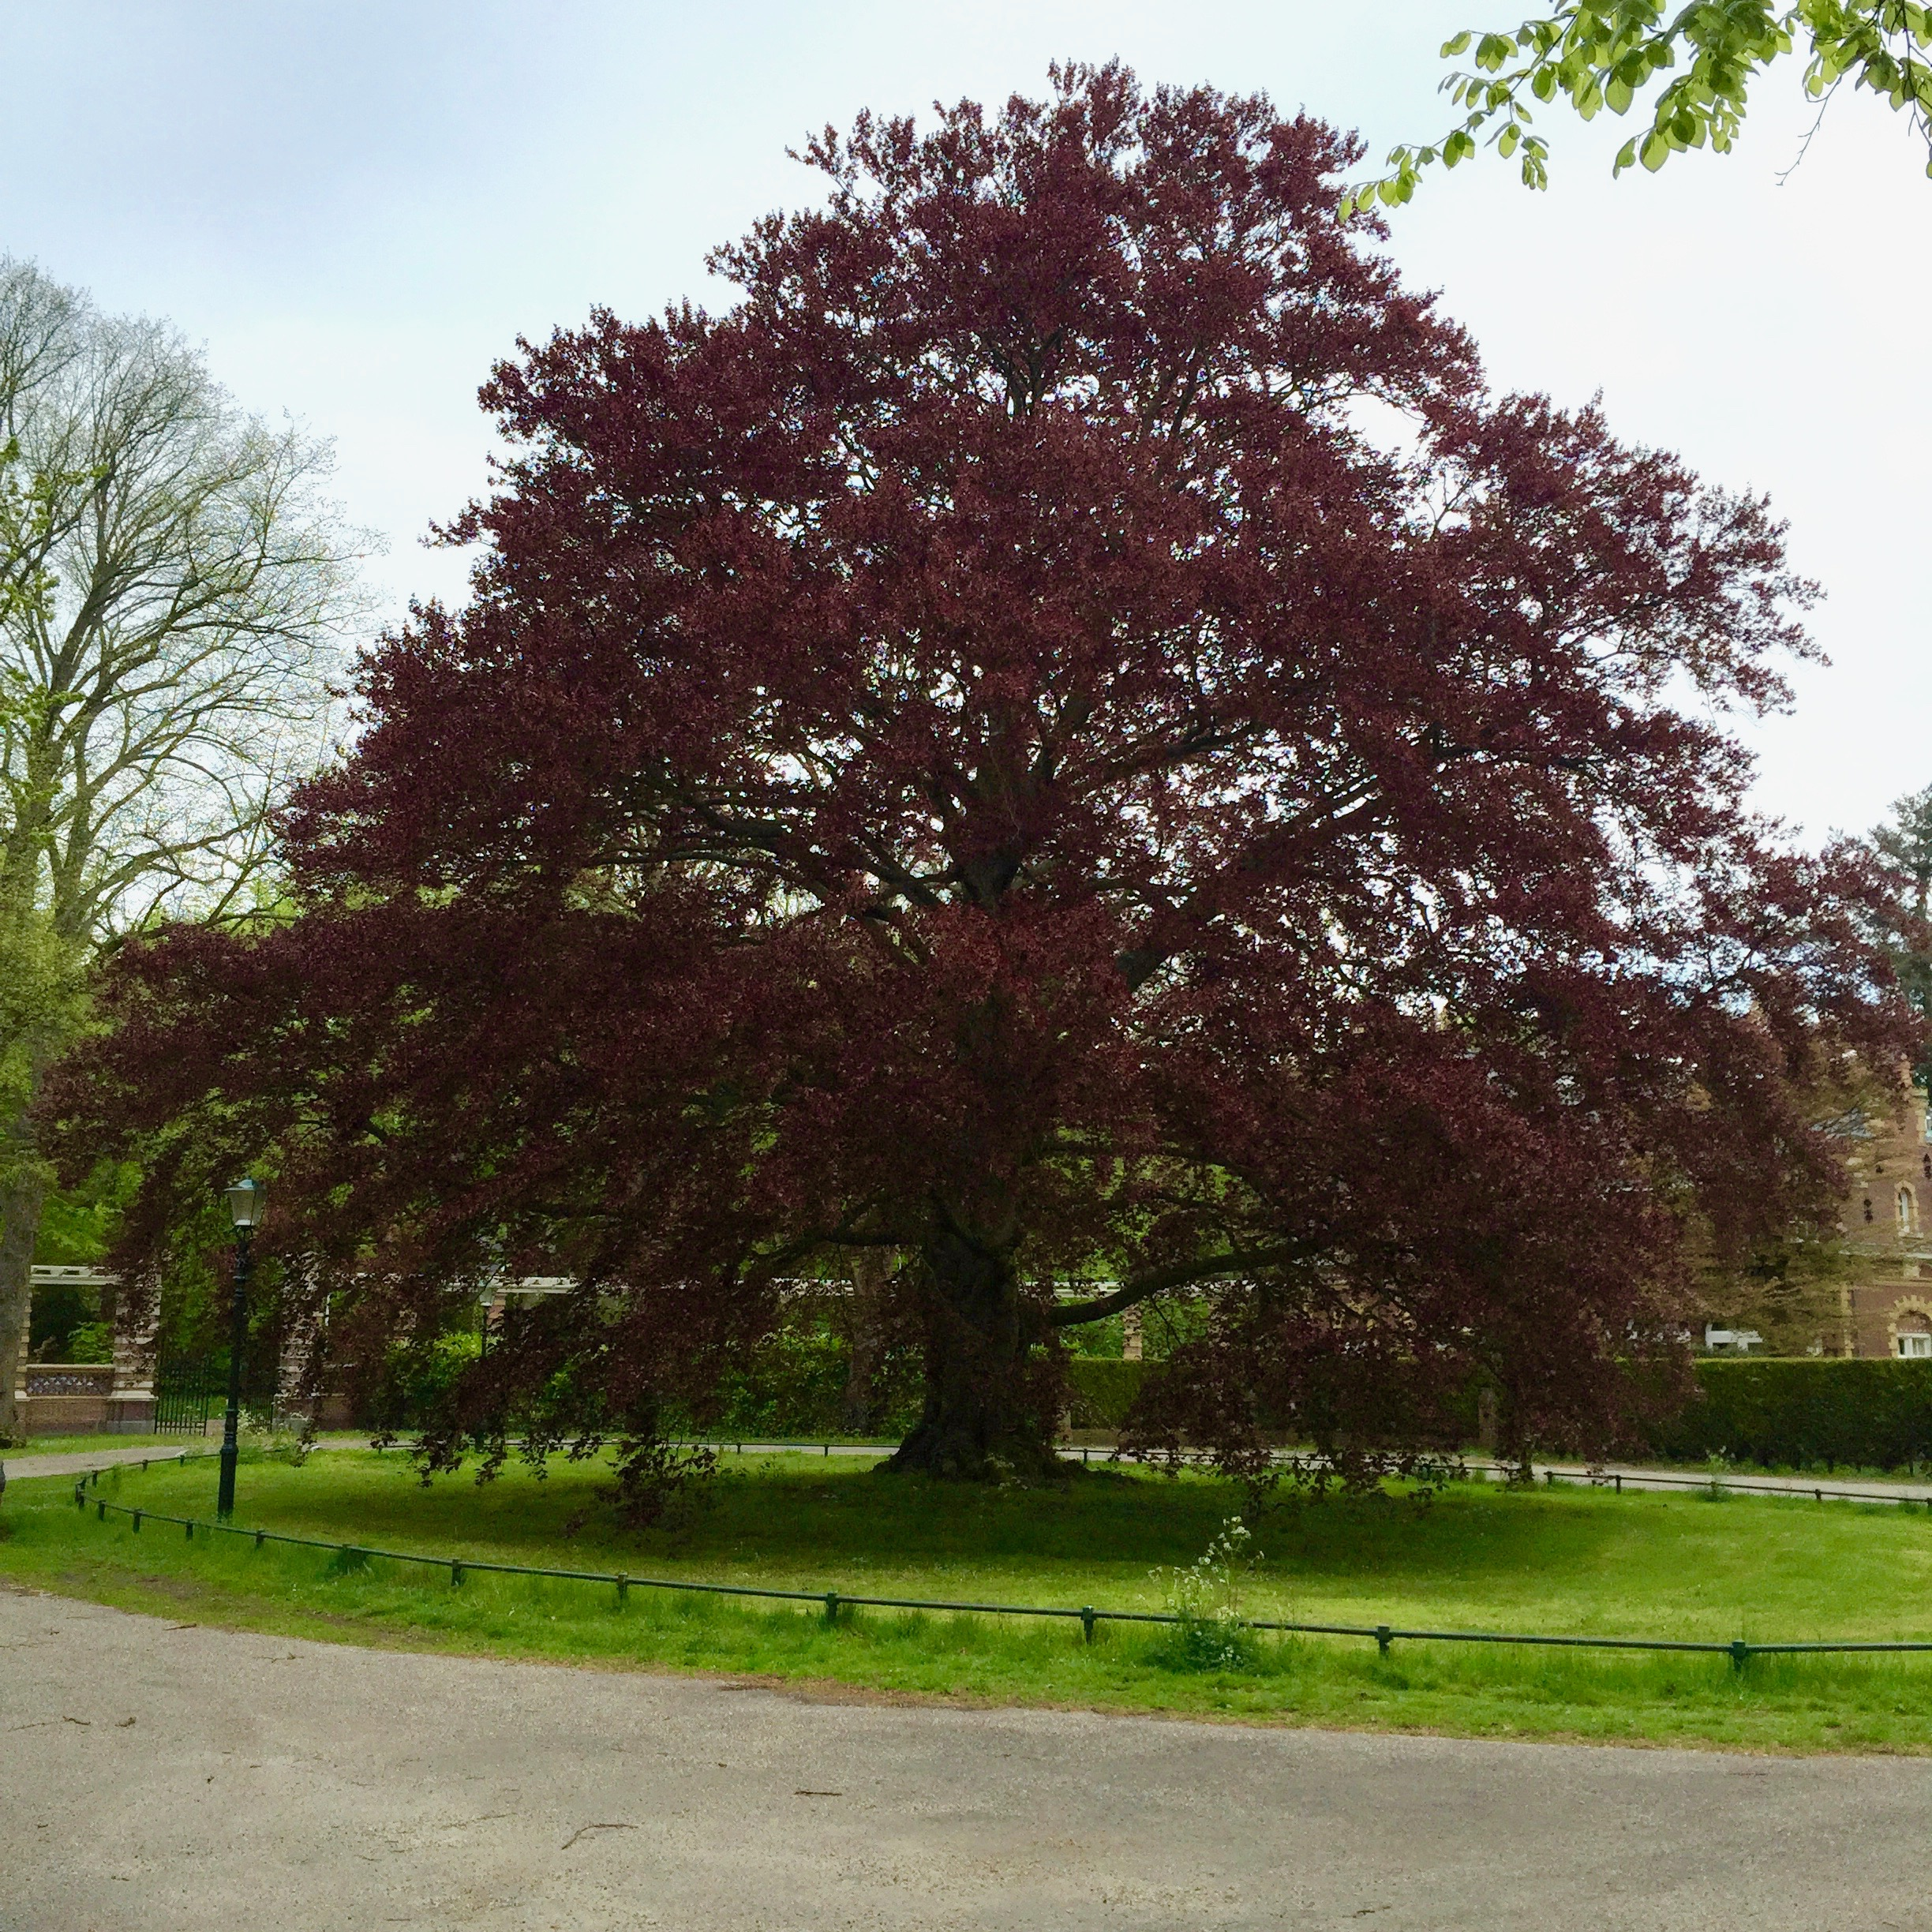 Tree in Wassenaar